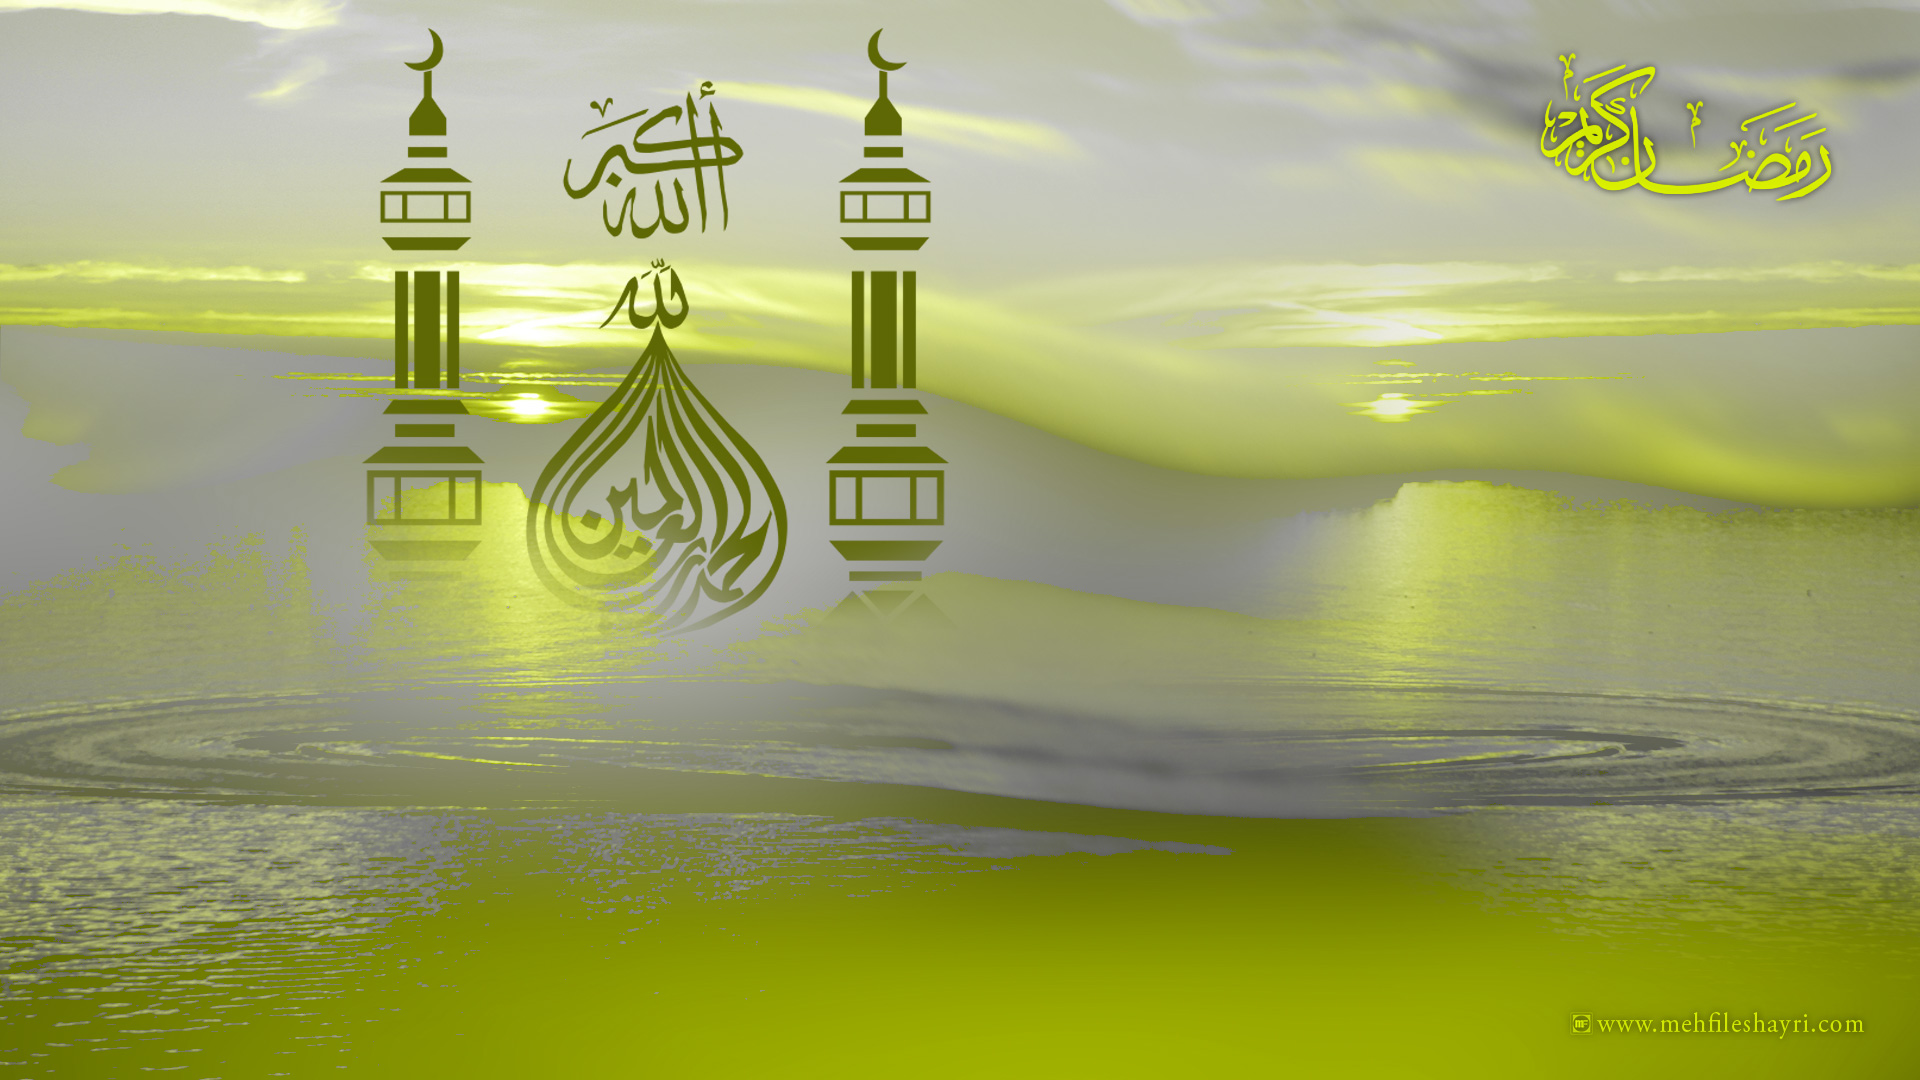 Hd wallpaper ramzan mubarak - Mehfileshayri Com Ramadan Kareem Wallpaper Click Image To View Full Size 1920 1080 Wallpapers And Backgrounds Pinterest Ramadan Mubarak